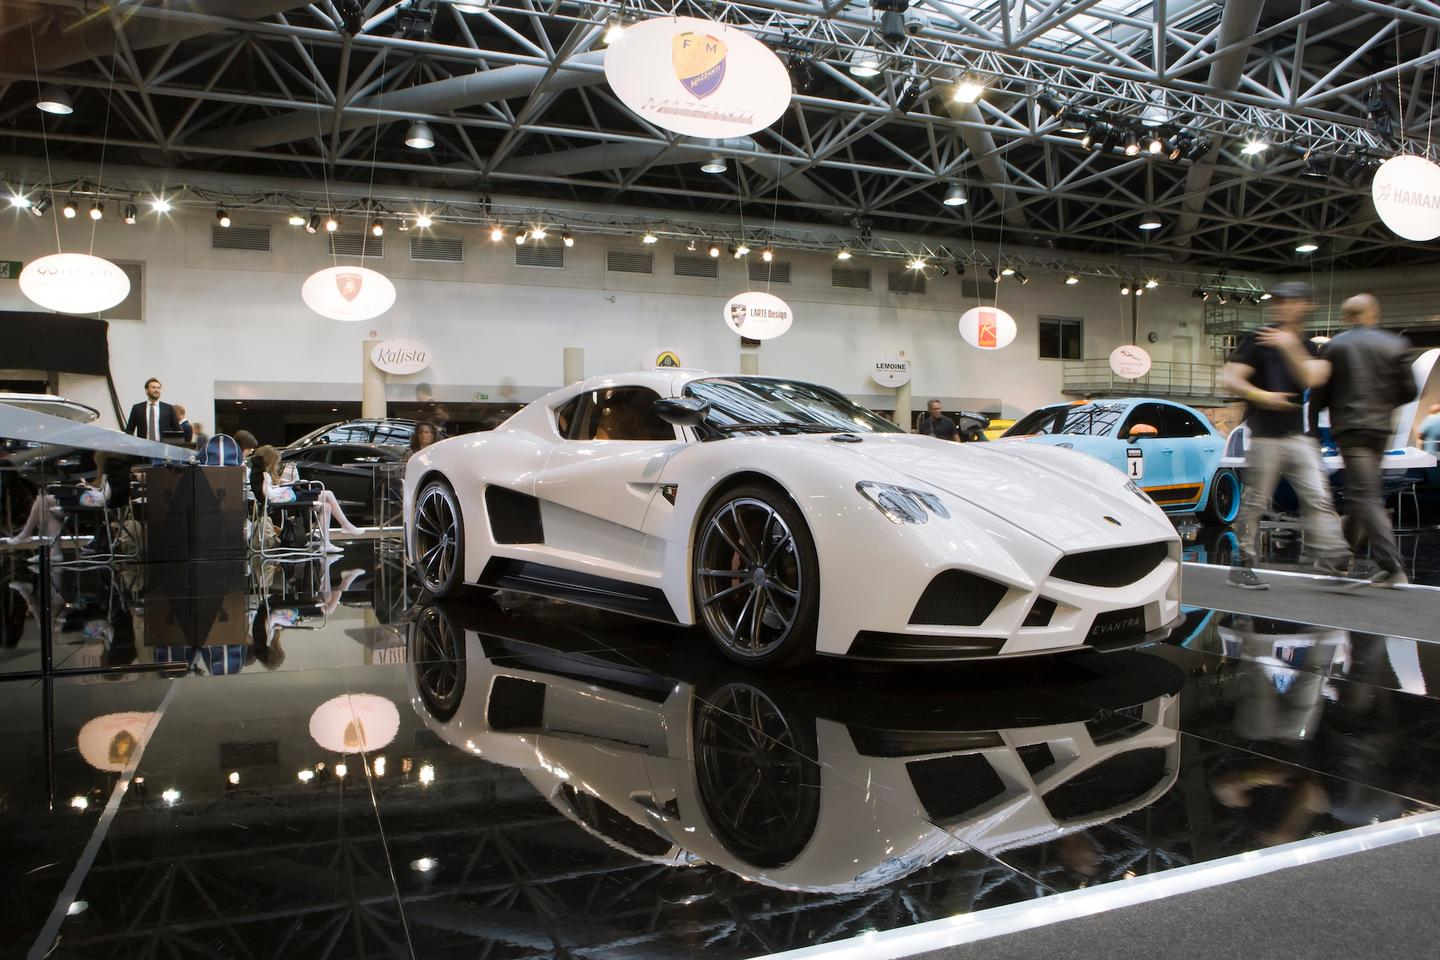 The Mazzanti's new White Dolomite paint job is inspired by Tuscan marble